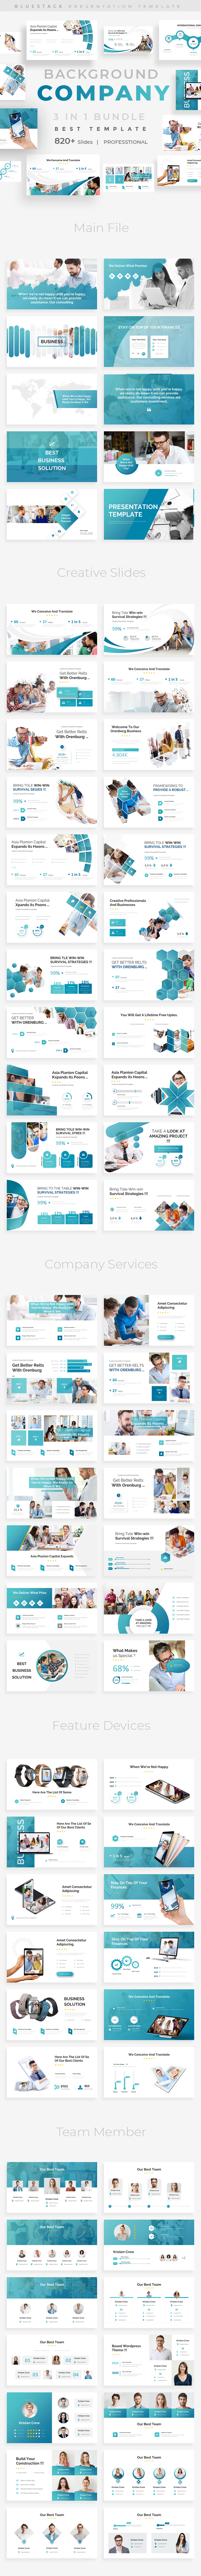 Company Background 3 in 1 Pitch Deck Bundle Powerpoint Template